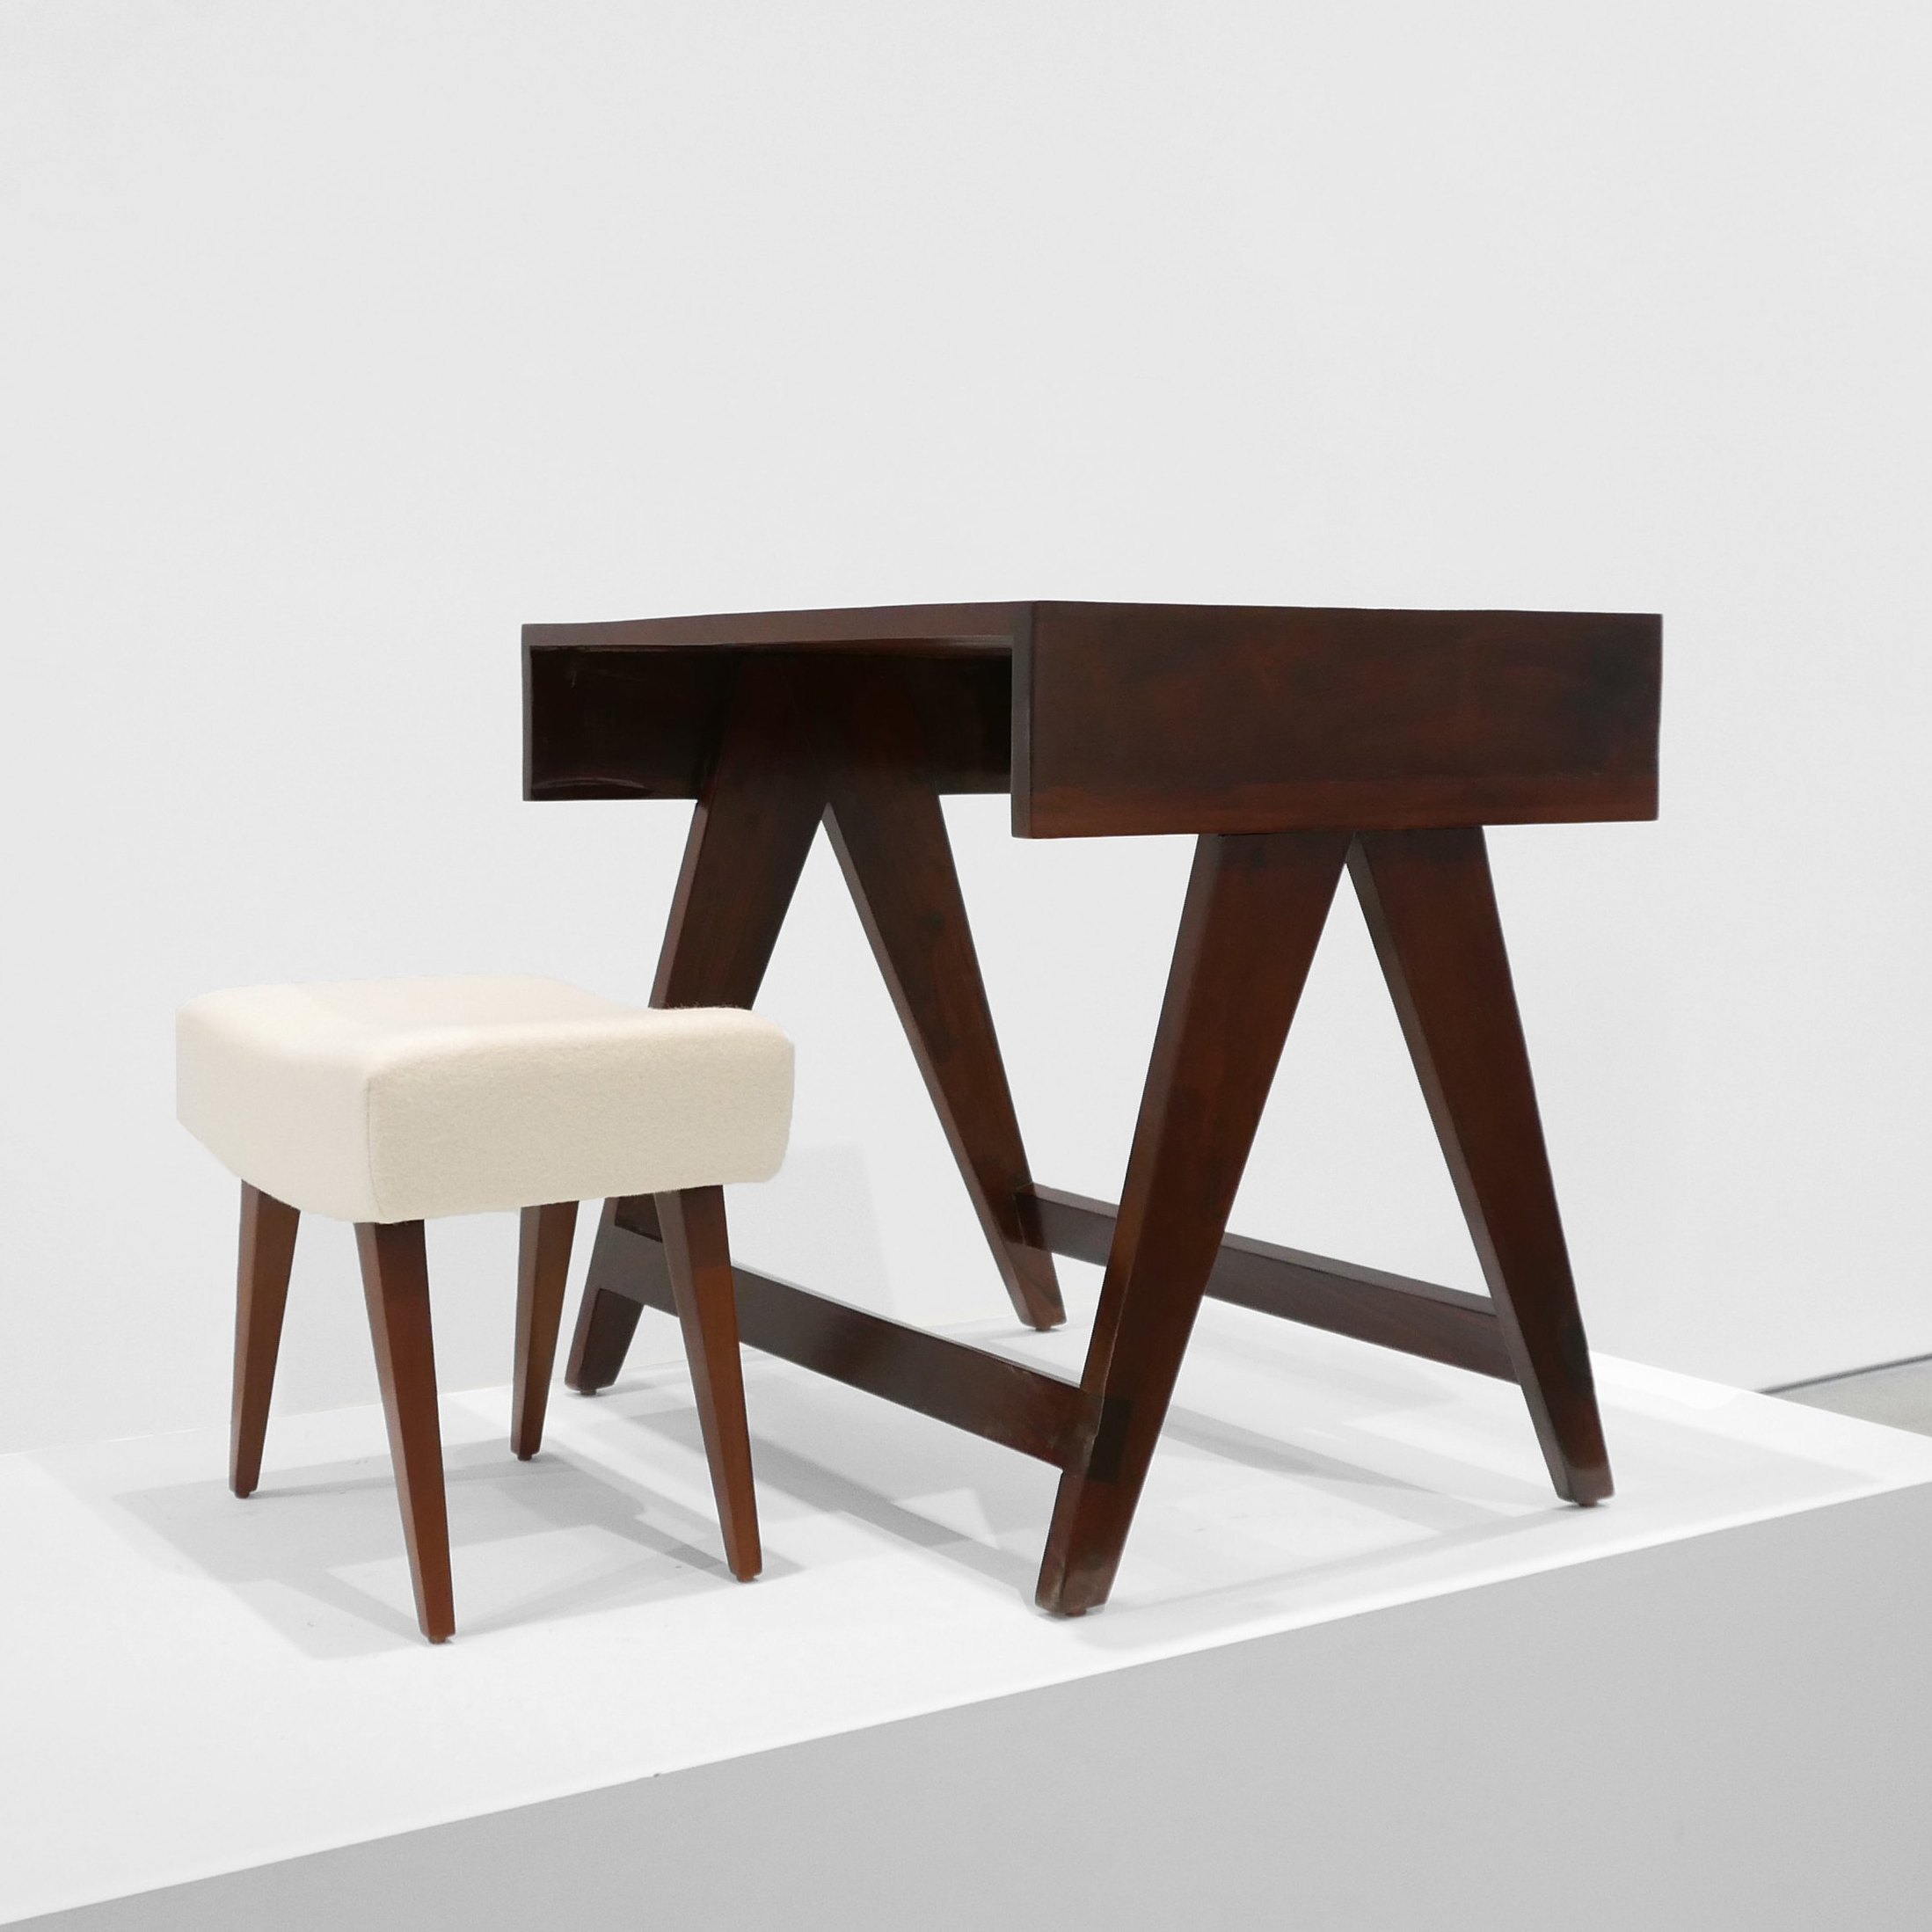 pierre jeanneret  desk & stool from chandigarh  c. 1950 -1959 ...